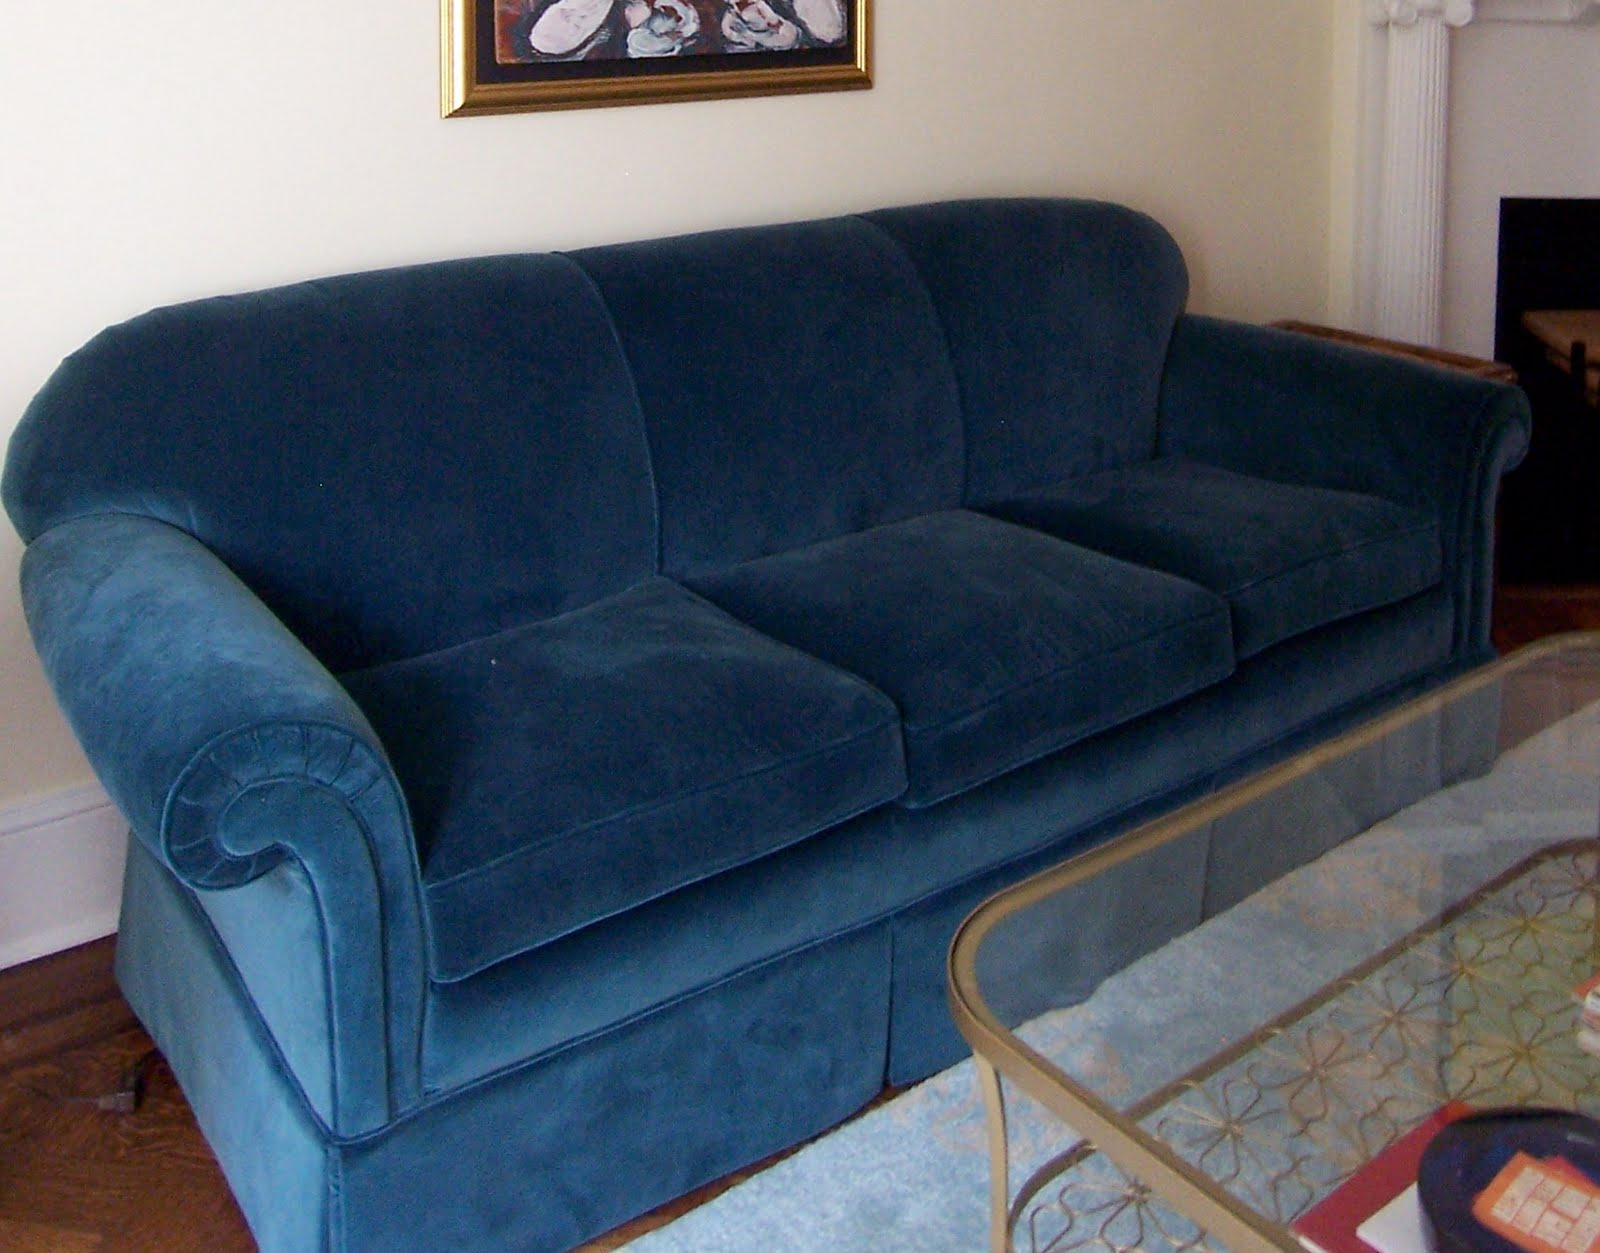 Reupholstering furniture is expensive